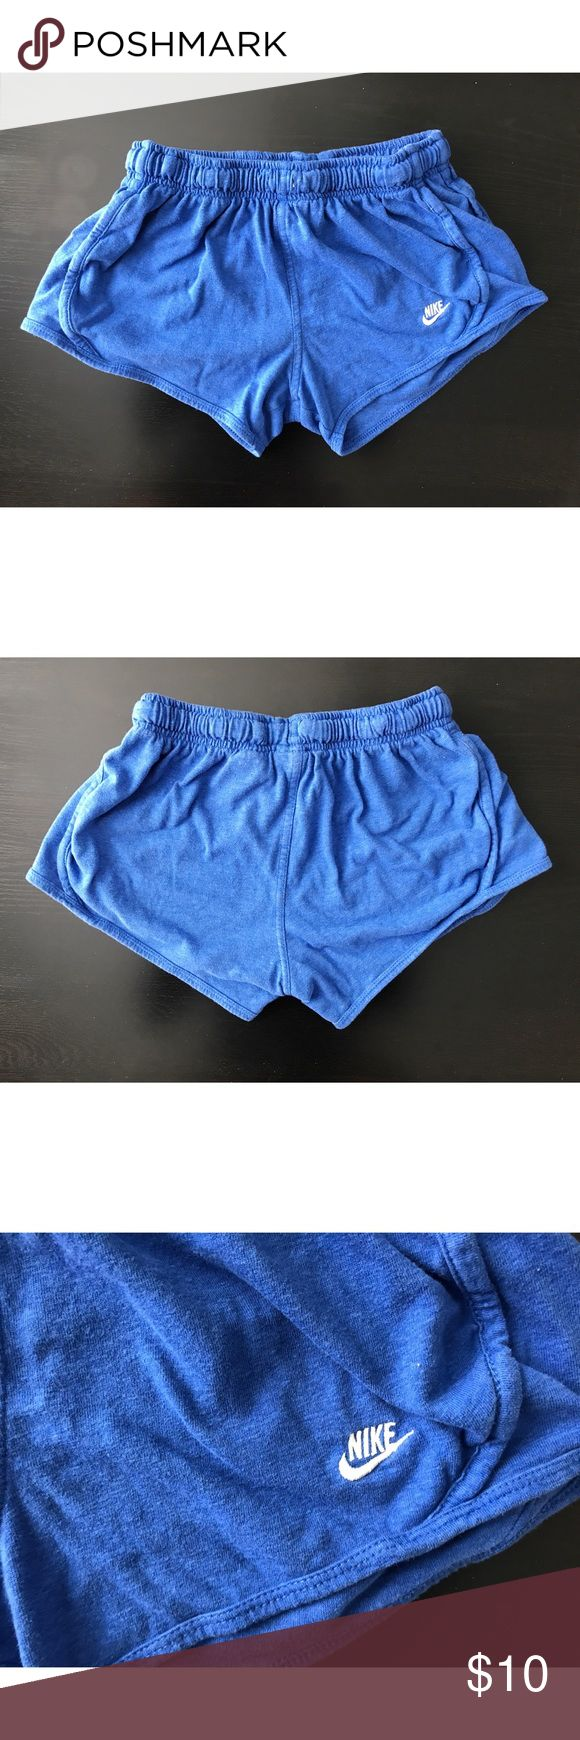 Nike cotton shorts Only worn a few times. Royal blue and bought at a Nike store. They are cotton and a XS Nike Shorts